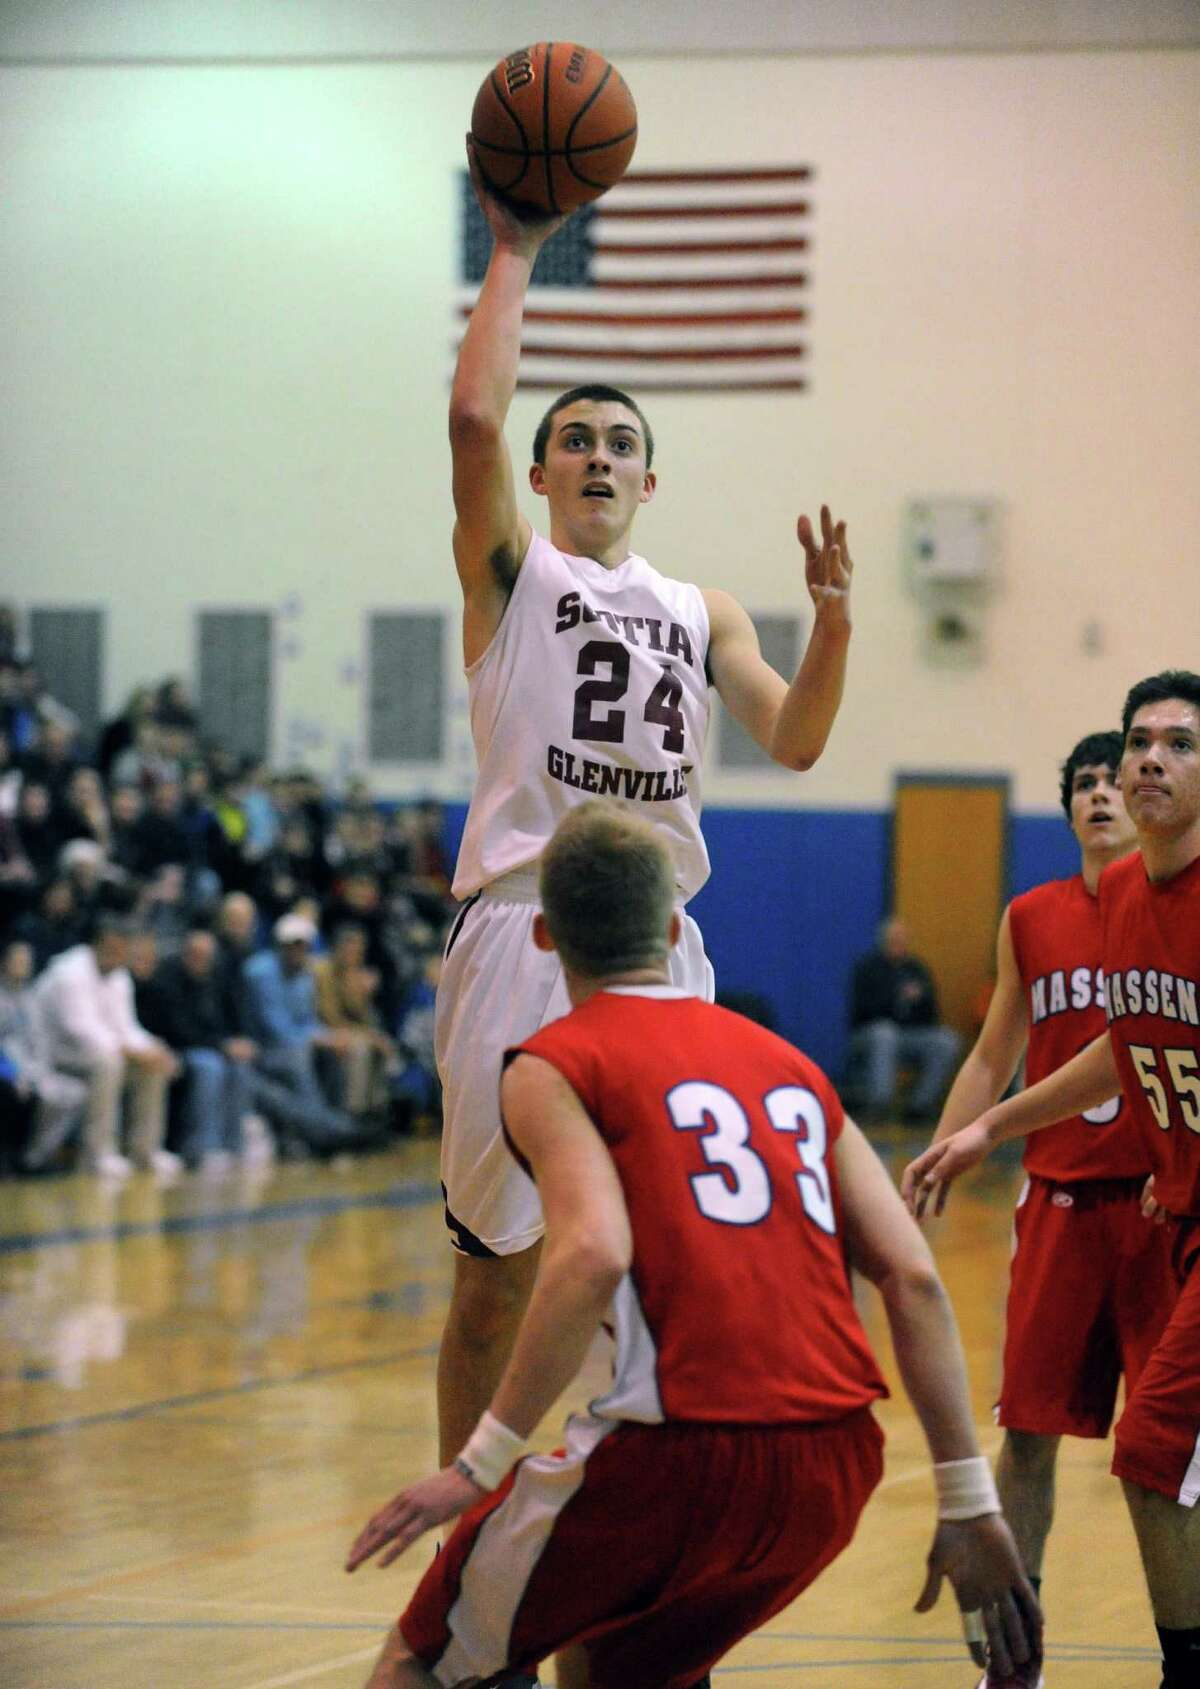 Scotia's Joe Cremo goes in for a score during their Region 2 Class A Semi-Finals boy's basketball game against Massena on Wednesday March 6, 2013 in Saratoga Springs, N.Y. (Michael P. Farrell/Times Union)